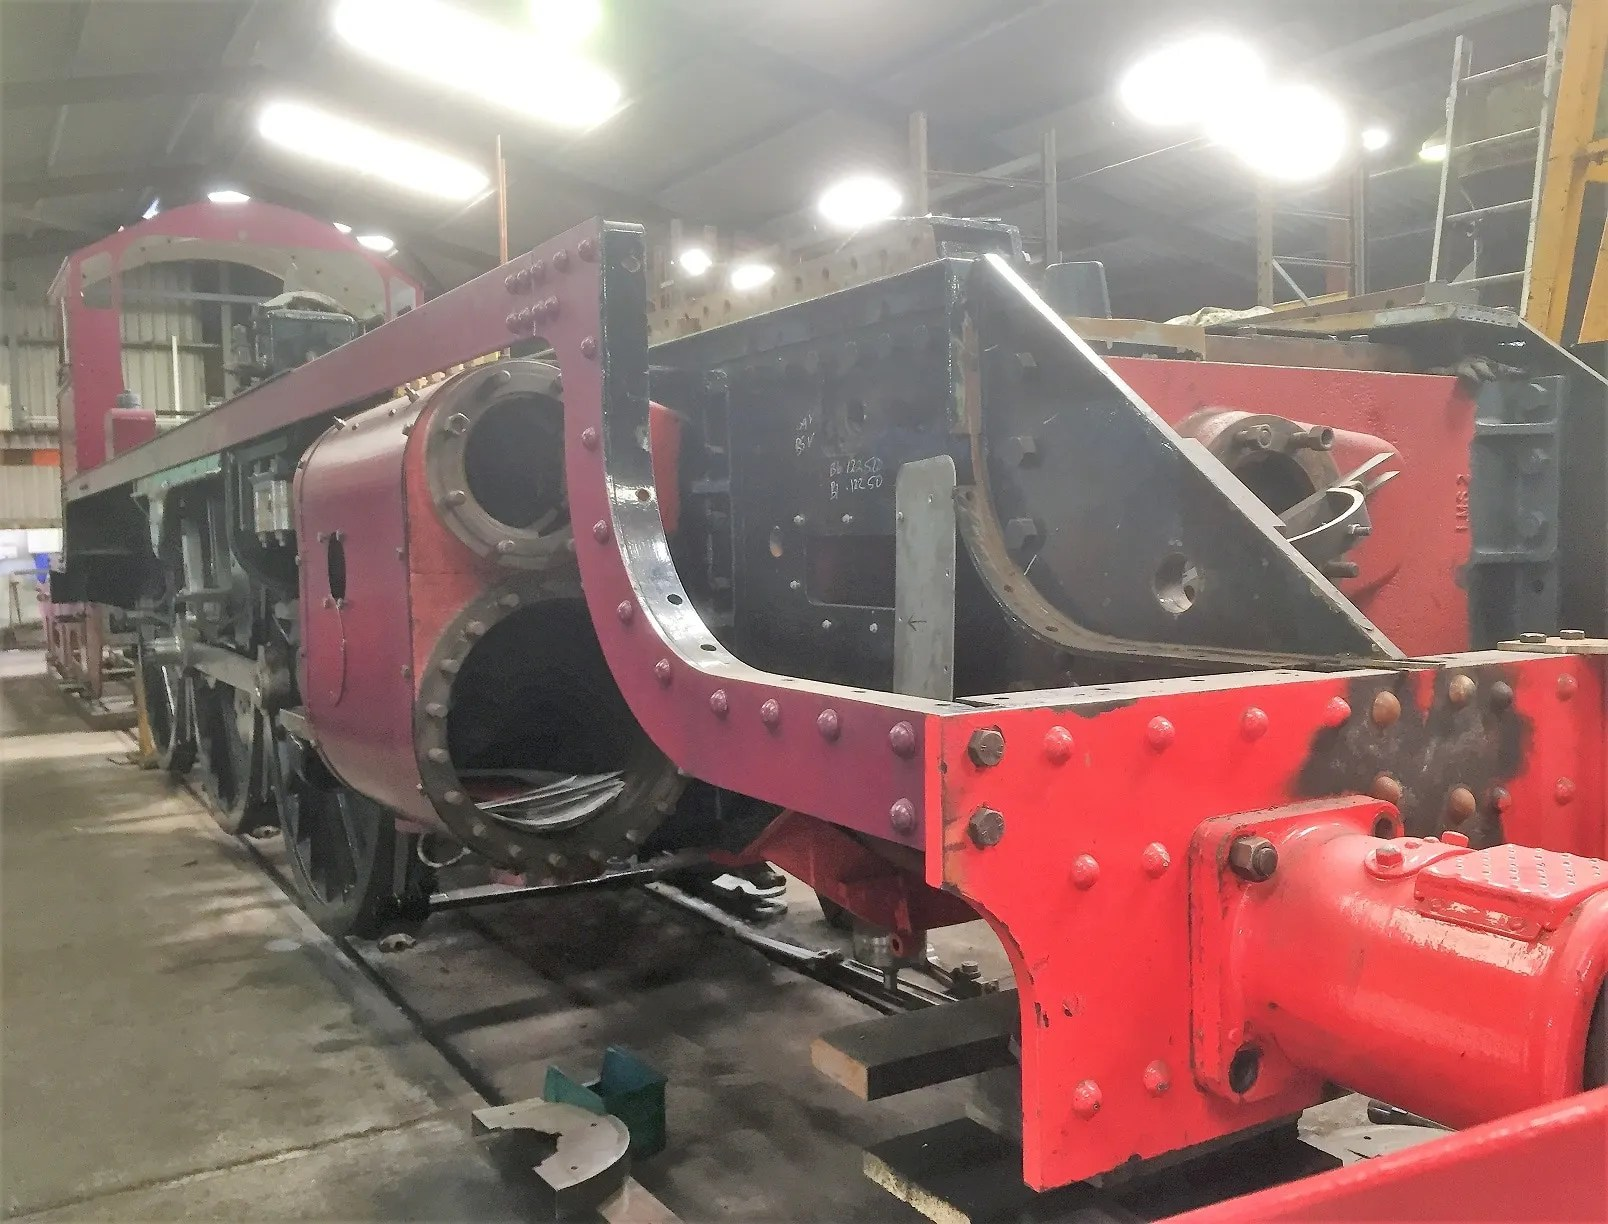 LMS Fowler Patriot 5551 The Unknown Warrior in the Workshops at the Llangollen Railway